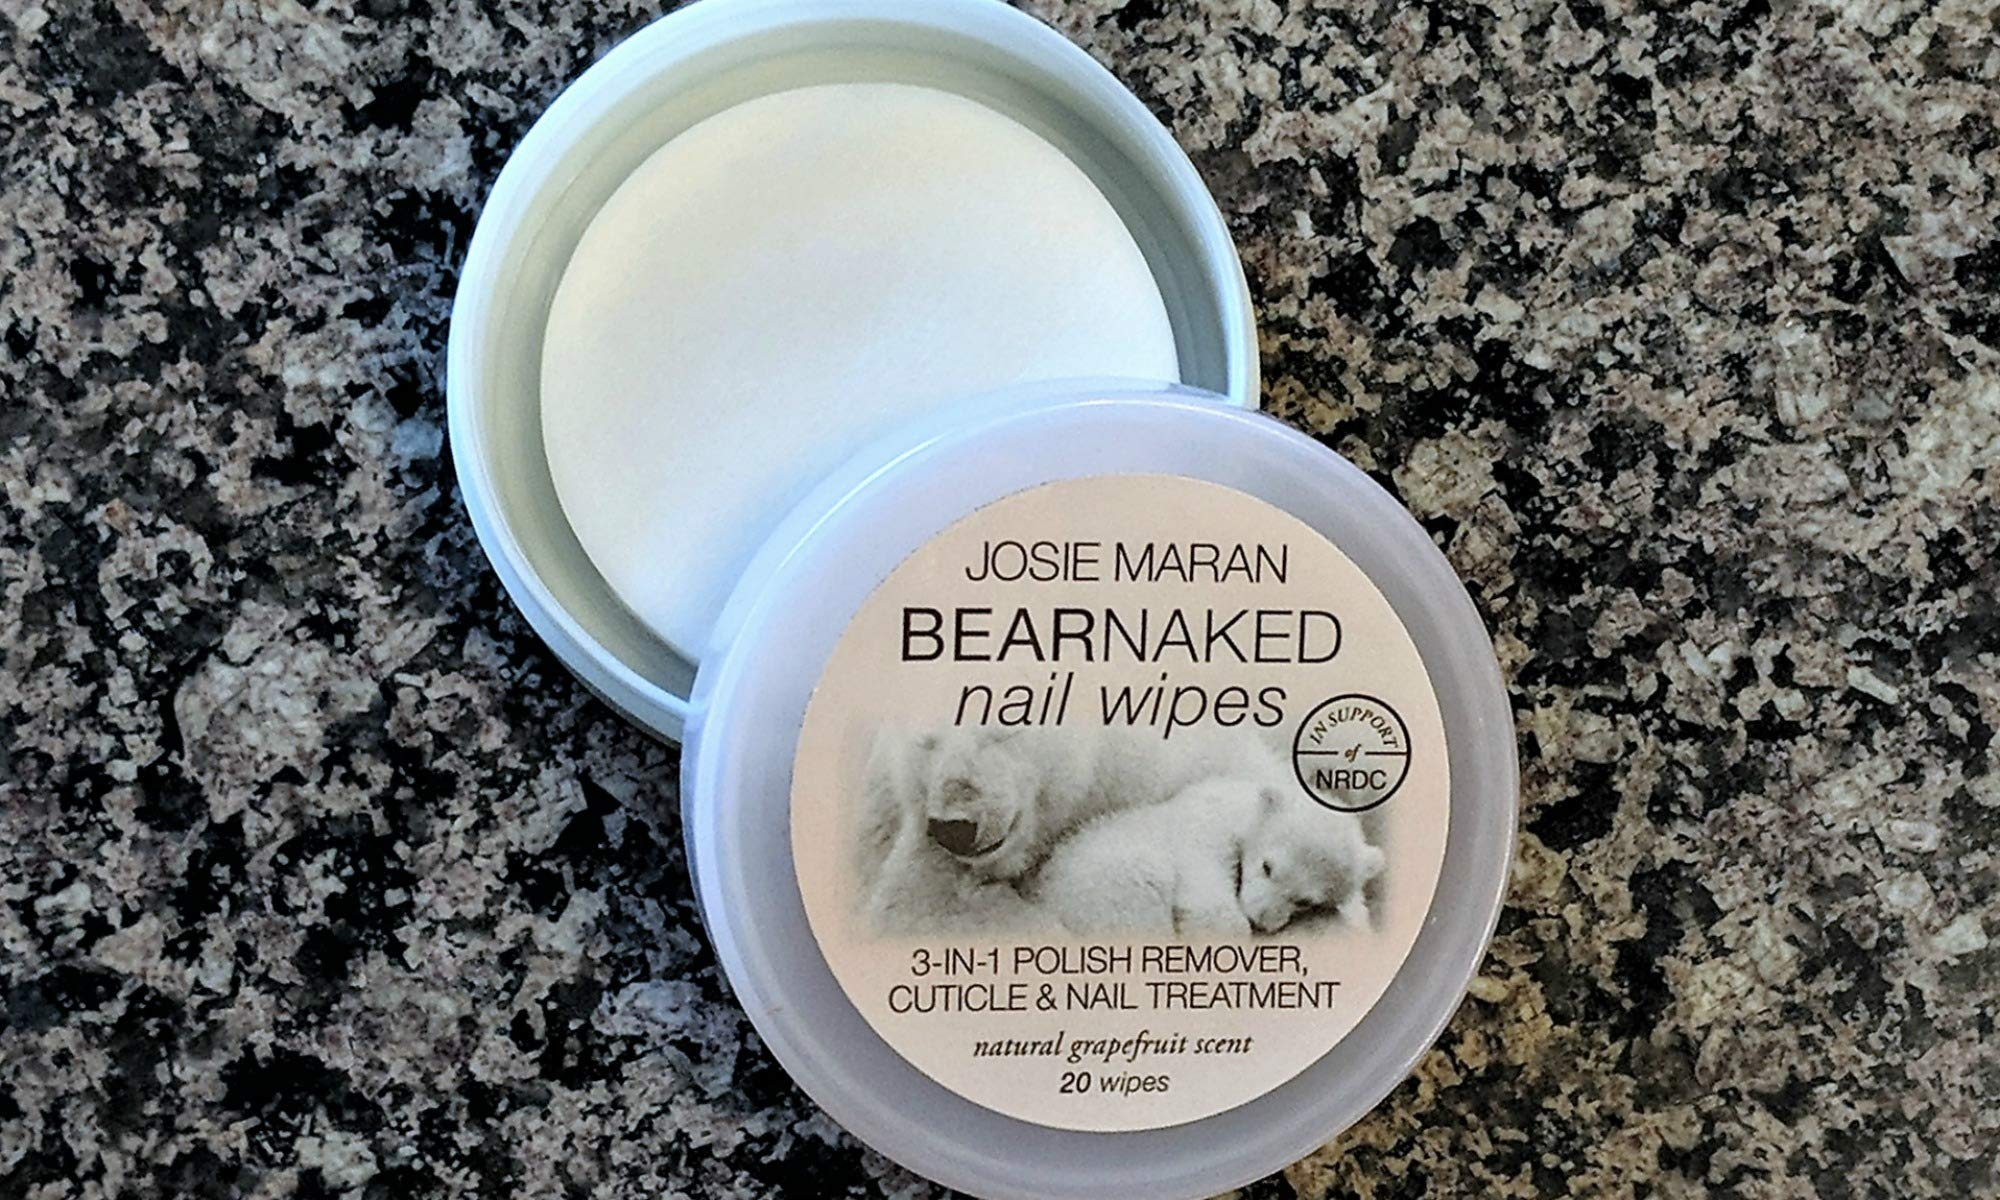 Josie Maran Bear Naked Nail Wipes - Remove Nail Polish and Hydrate Dry Cuticles (Grapefruit, 20 Wipes) by Josie Maran